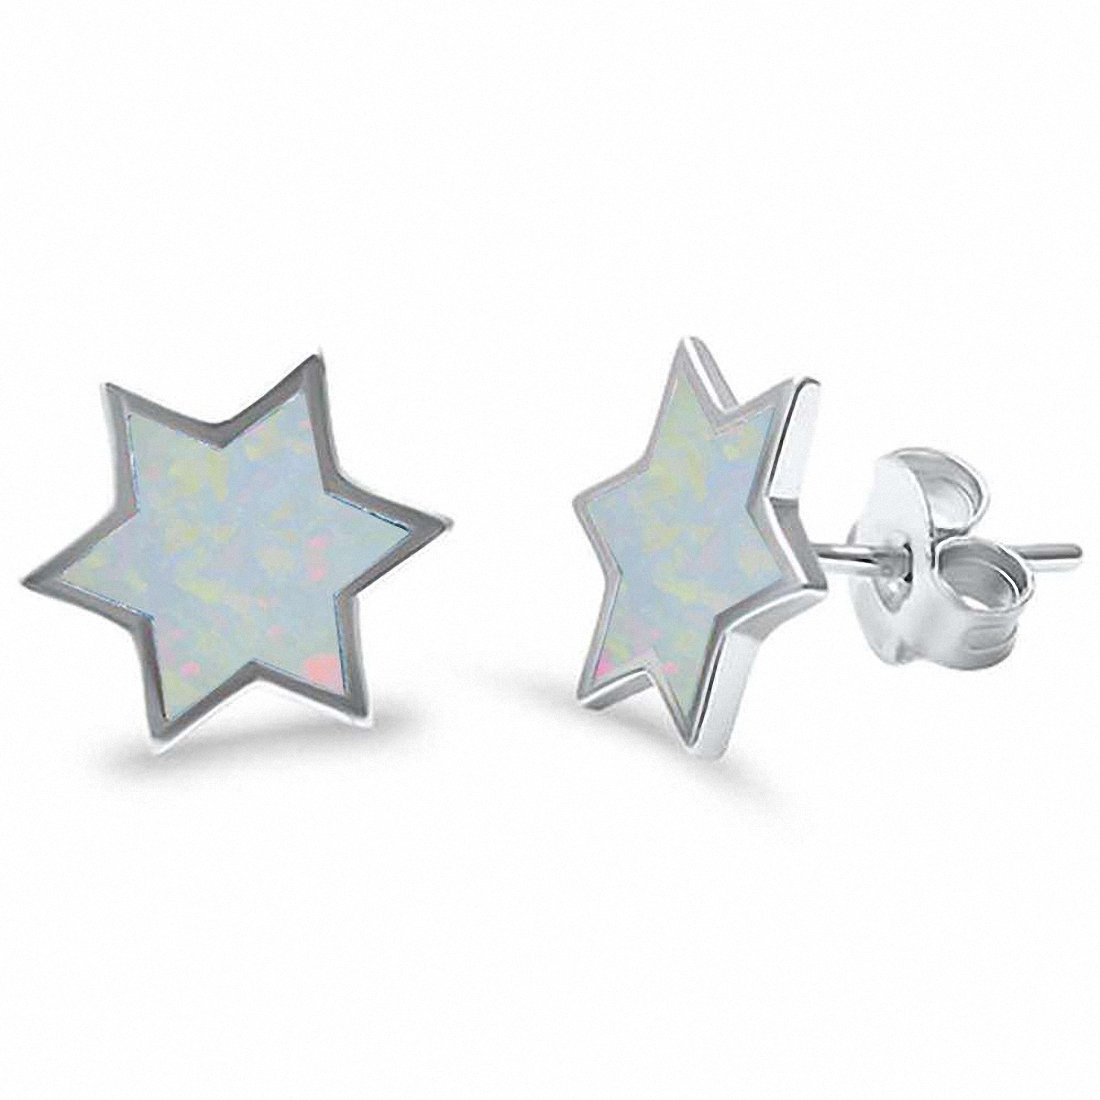 10mm Star Stud Earrings Lab Created Blue Opal Fashion Star Earrings Choose Color